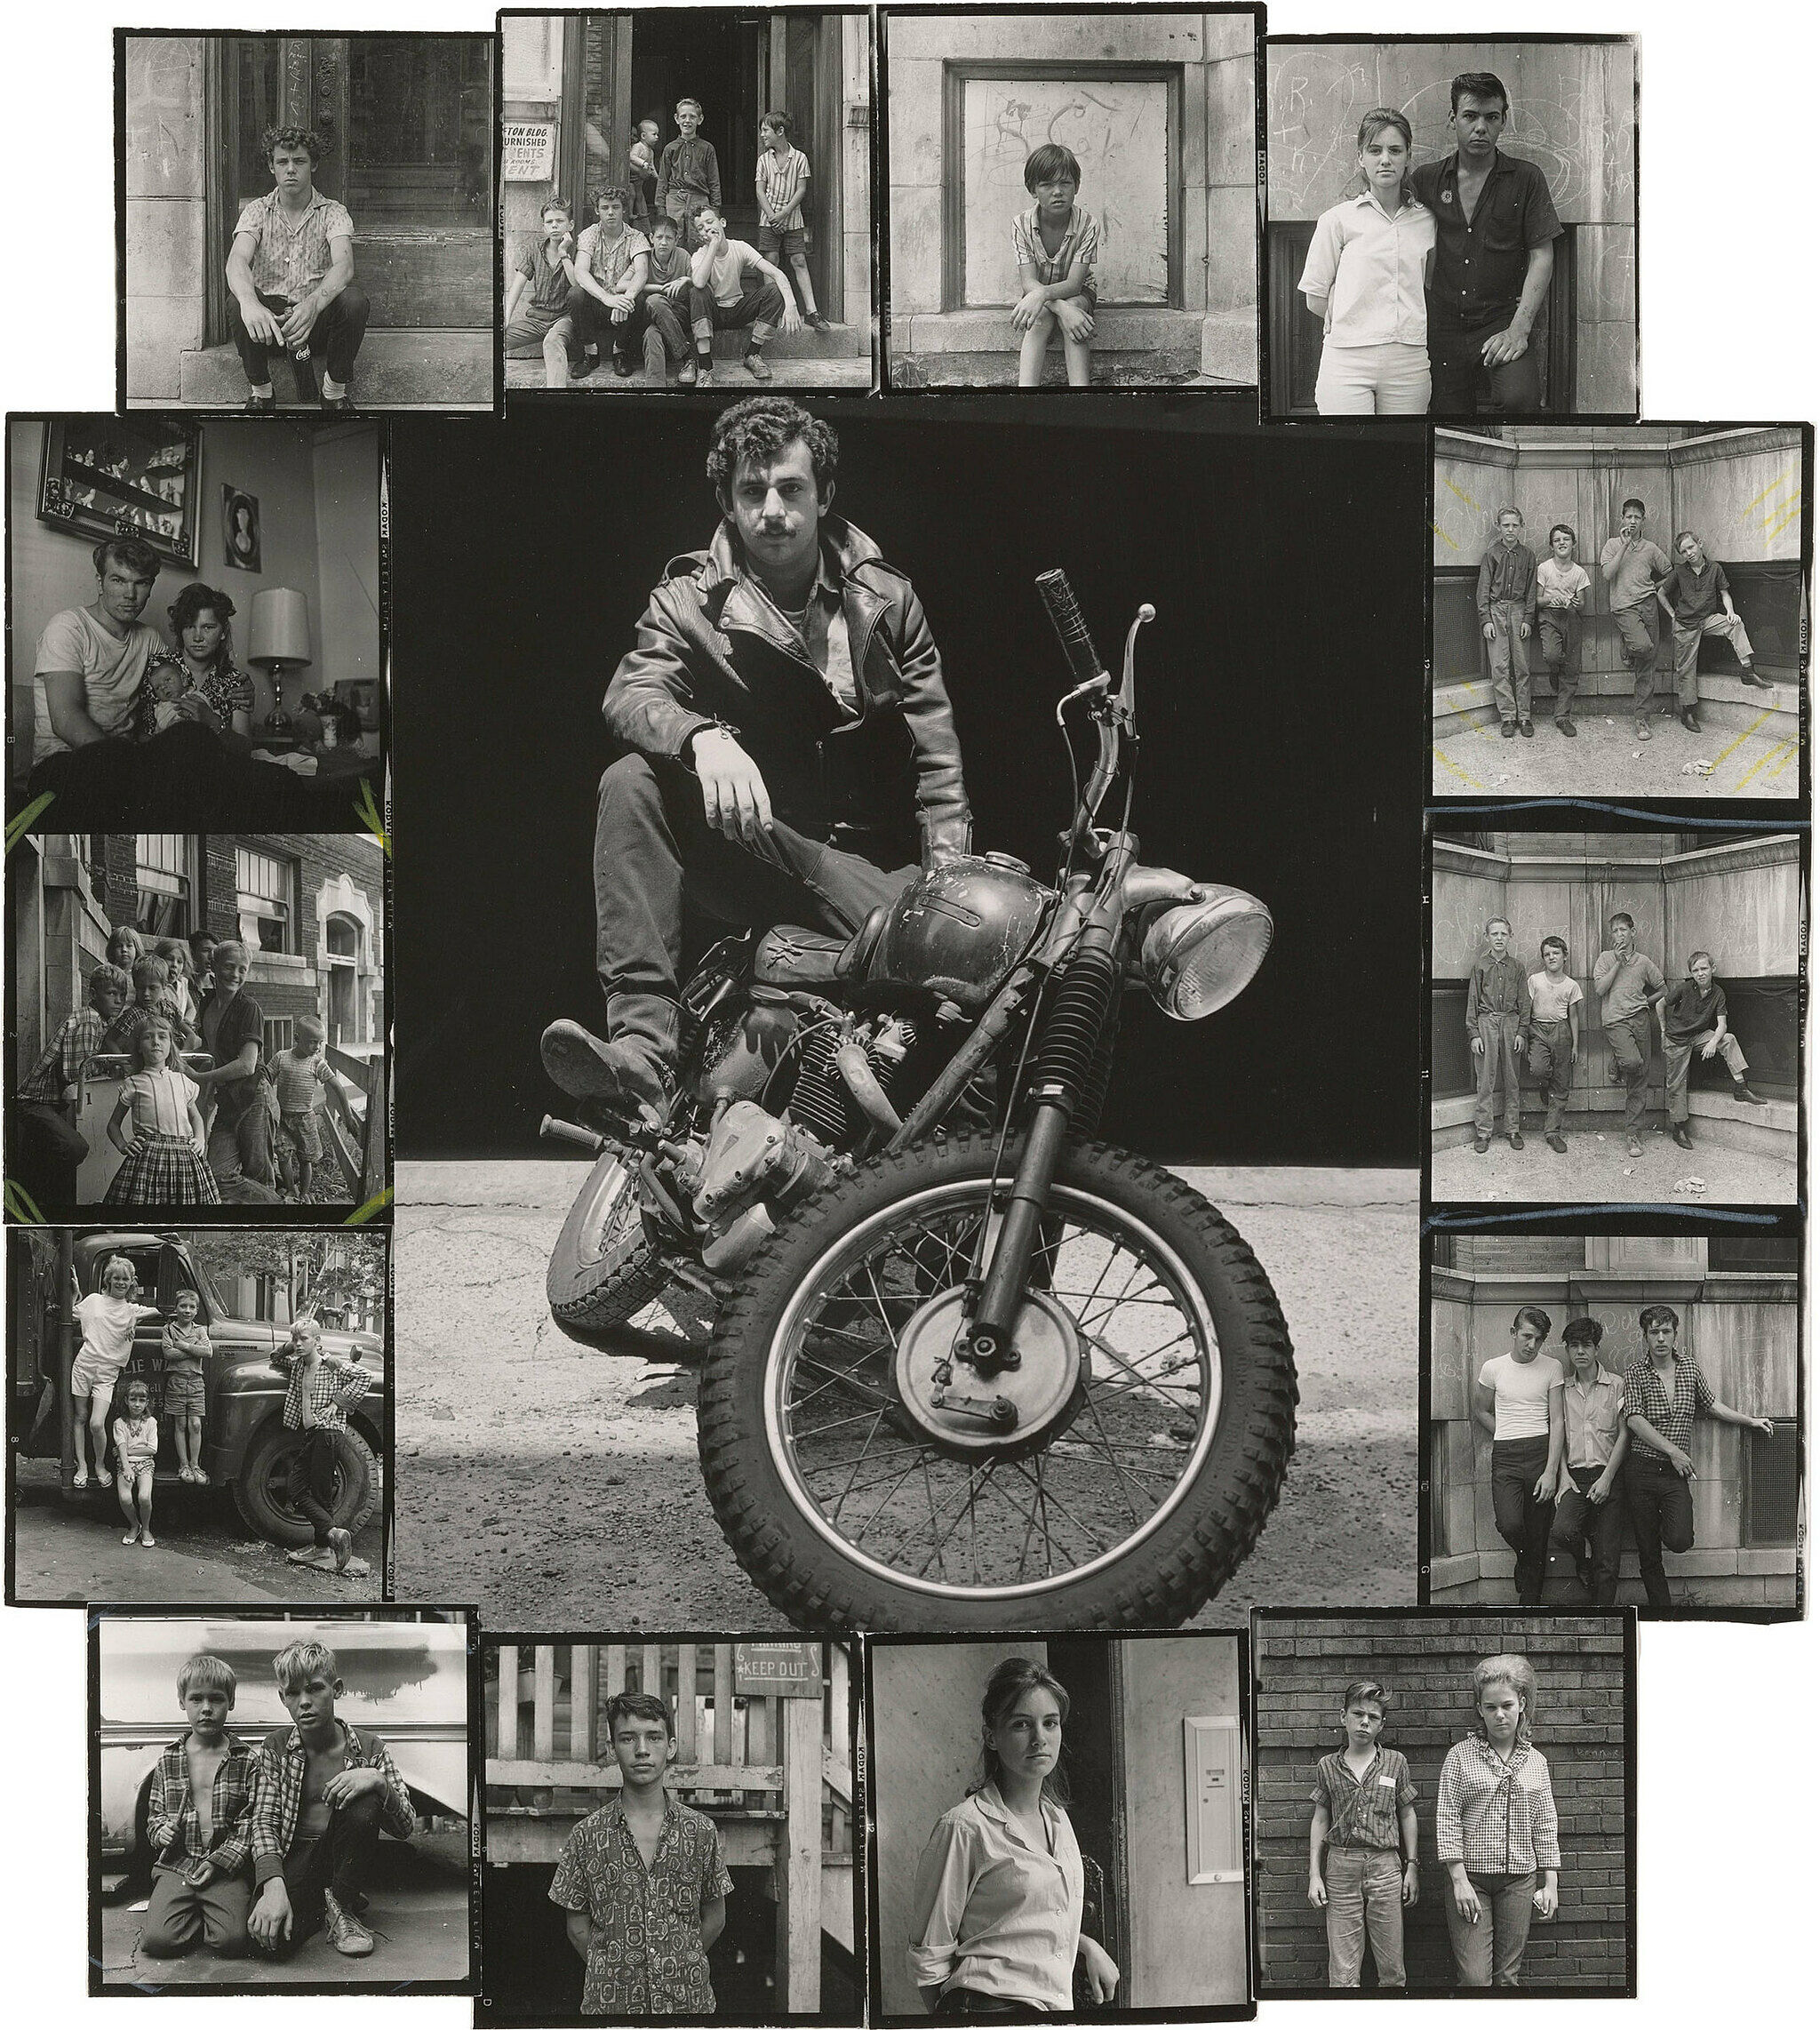 A work by Danny Lyon. Photographs of Men, women, and children posed in interior and exteriors in black and white